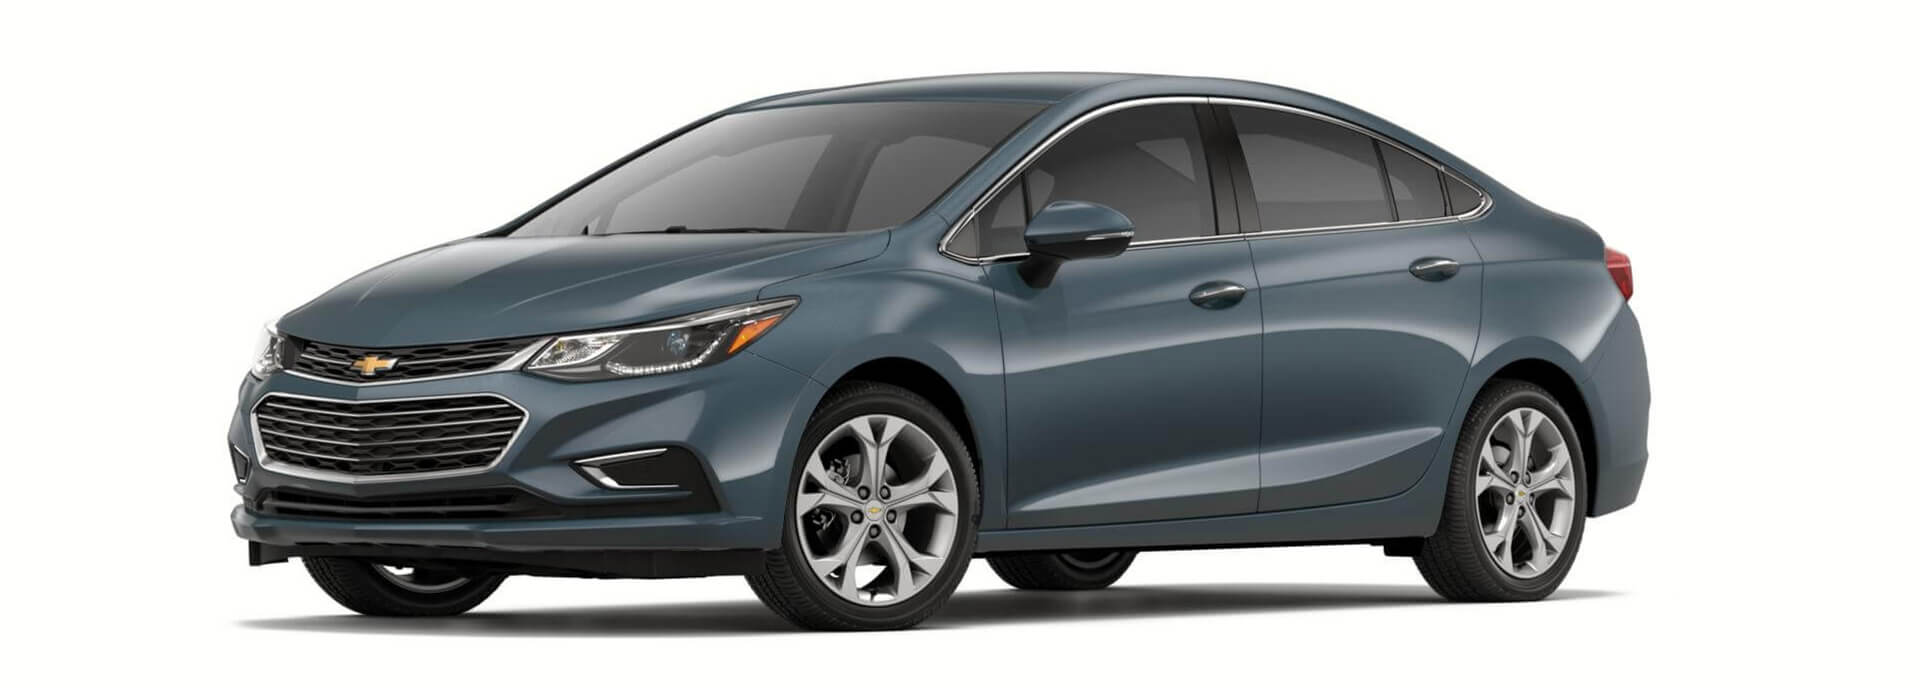 2018 chevrolet cruze info sunrise chevrolet sunrise chevrolet